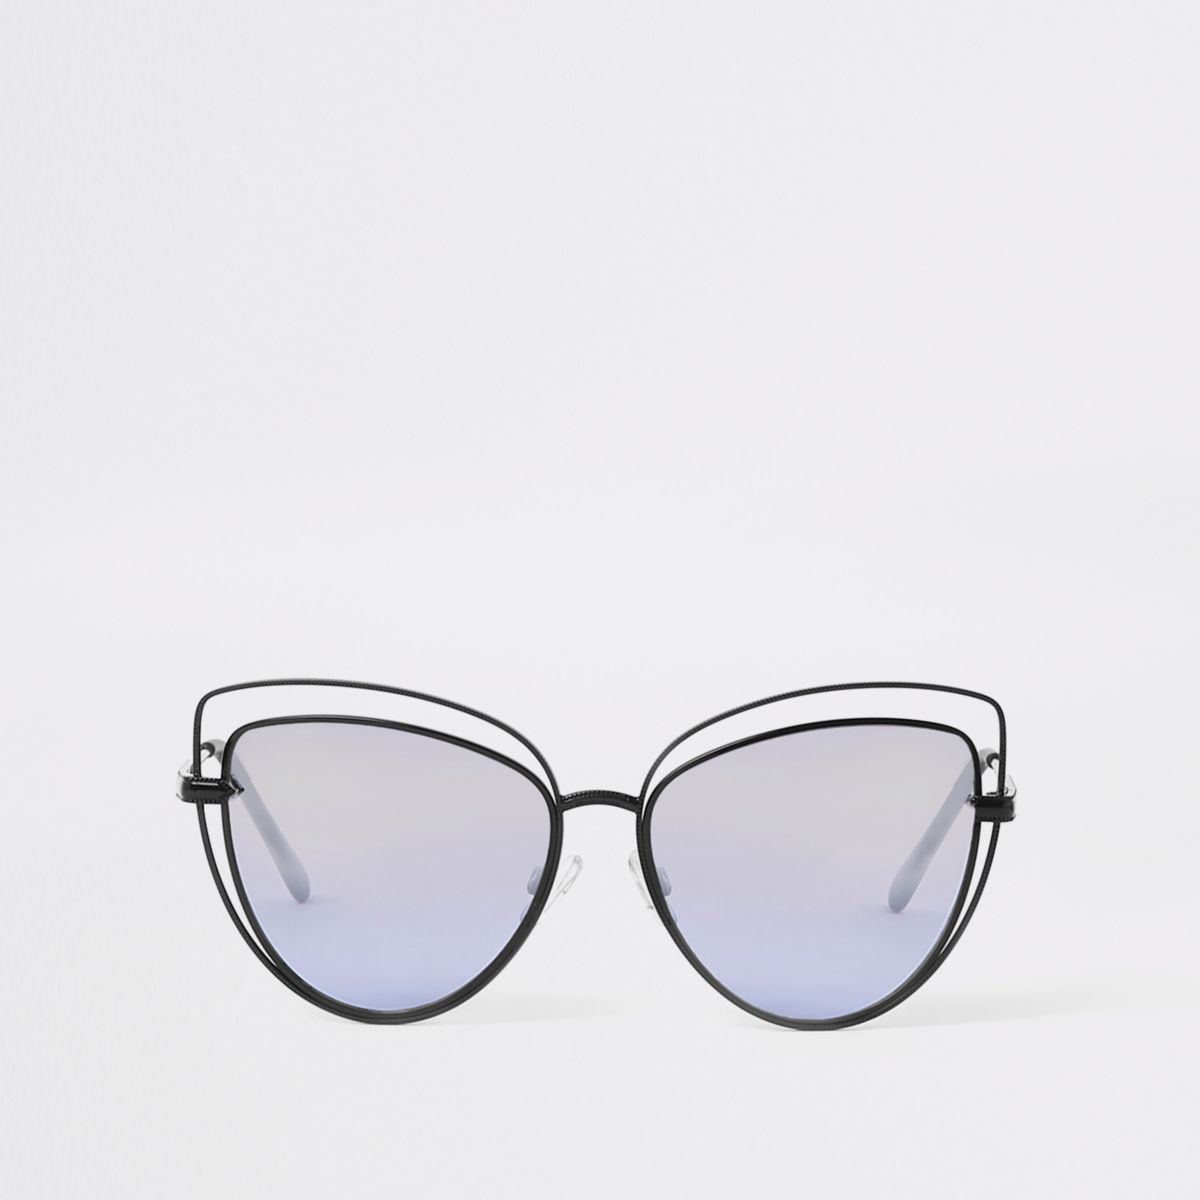 Black cut out cat eye sunglasses